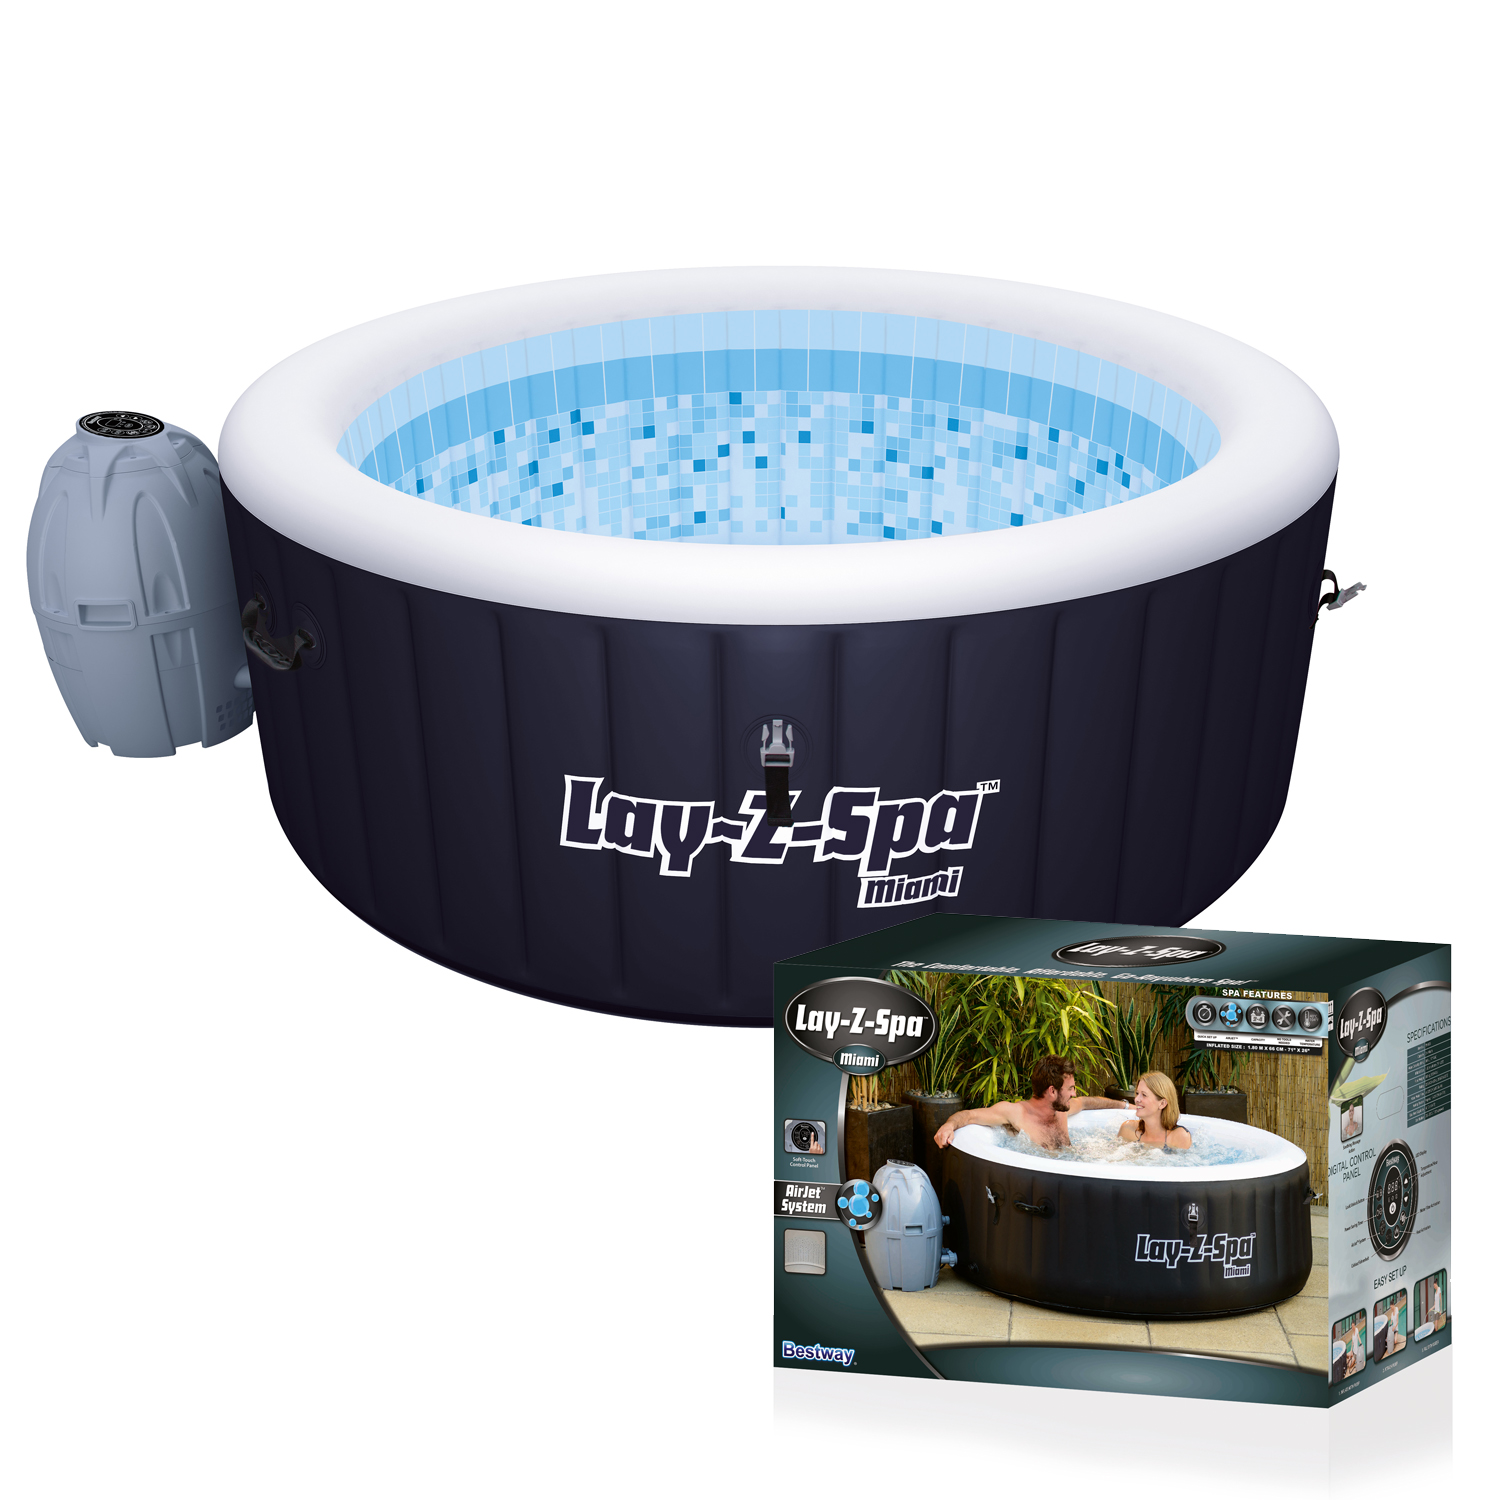 bestway 54123 whirlpool outdoor pool jacuzzi lazy spa badewanne wellness luxus ebay. Black Bedroom Furniture Sets. Home Design Ideas